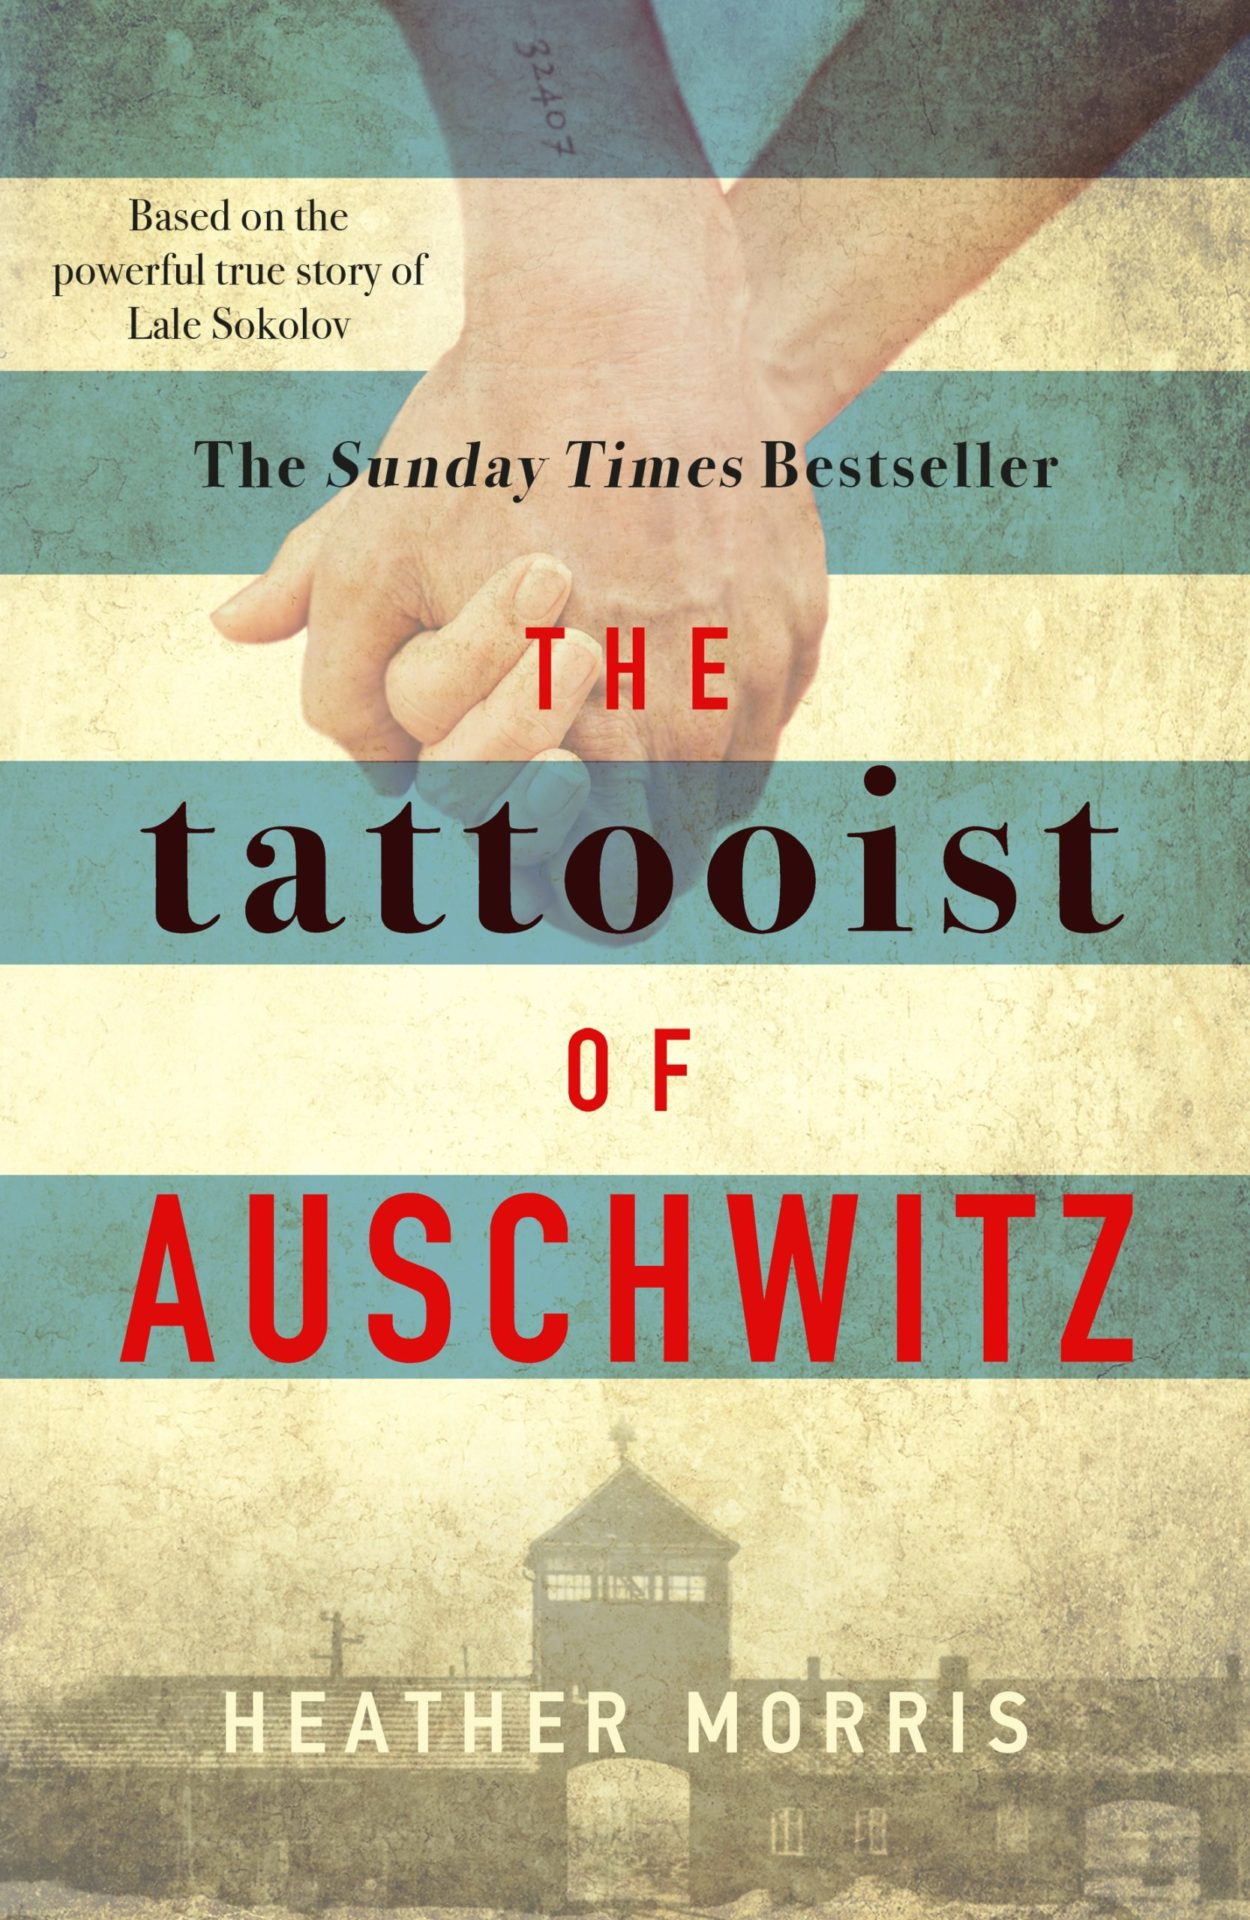 The Tattooist of Auschwitz by Heather Morris | 9781785763670